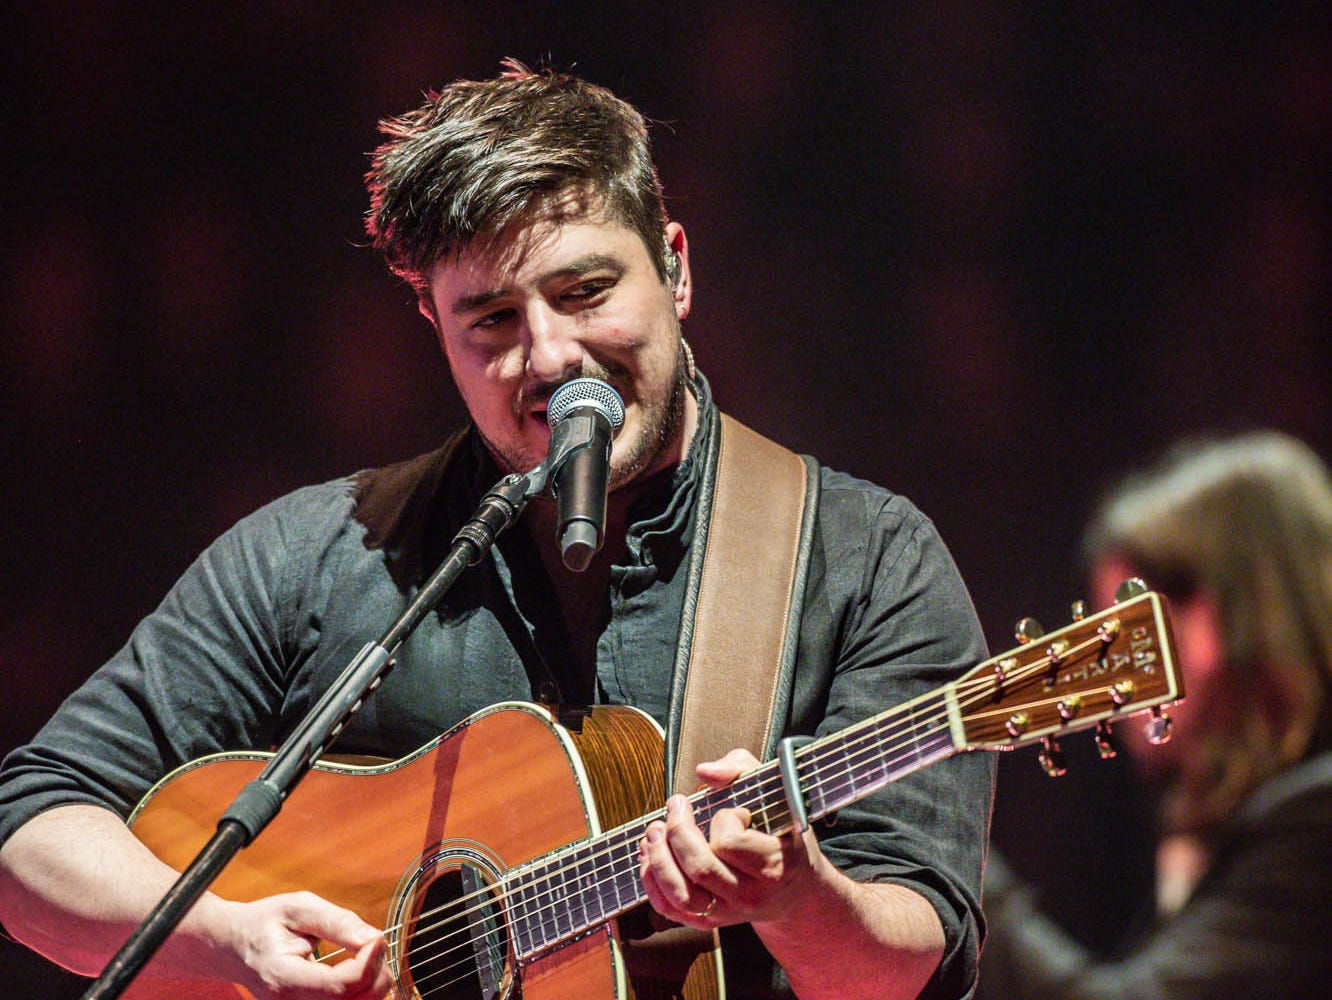 Marcus Mumford, lead vocalist for the British band Mumford & Sons performs with the band at Bankers Life Fieldhouse in Indianapolis on Monday, March 25, 2019.